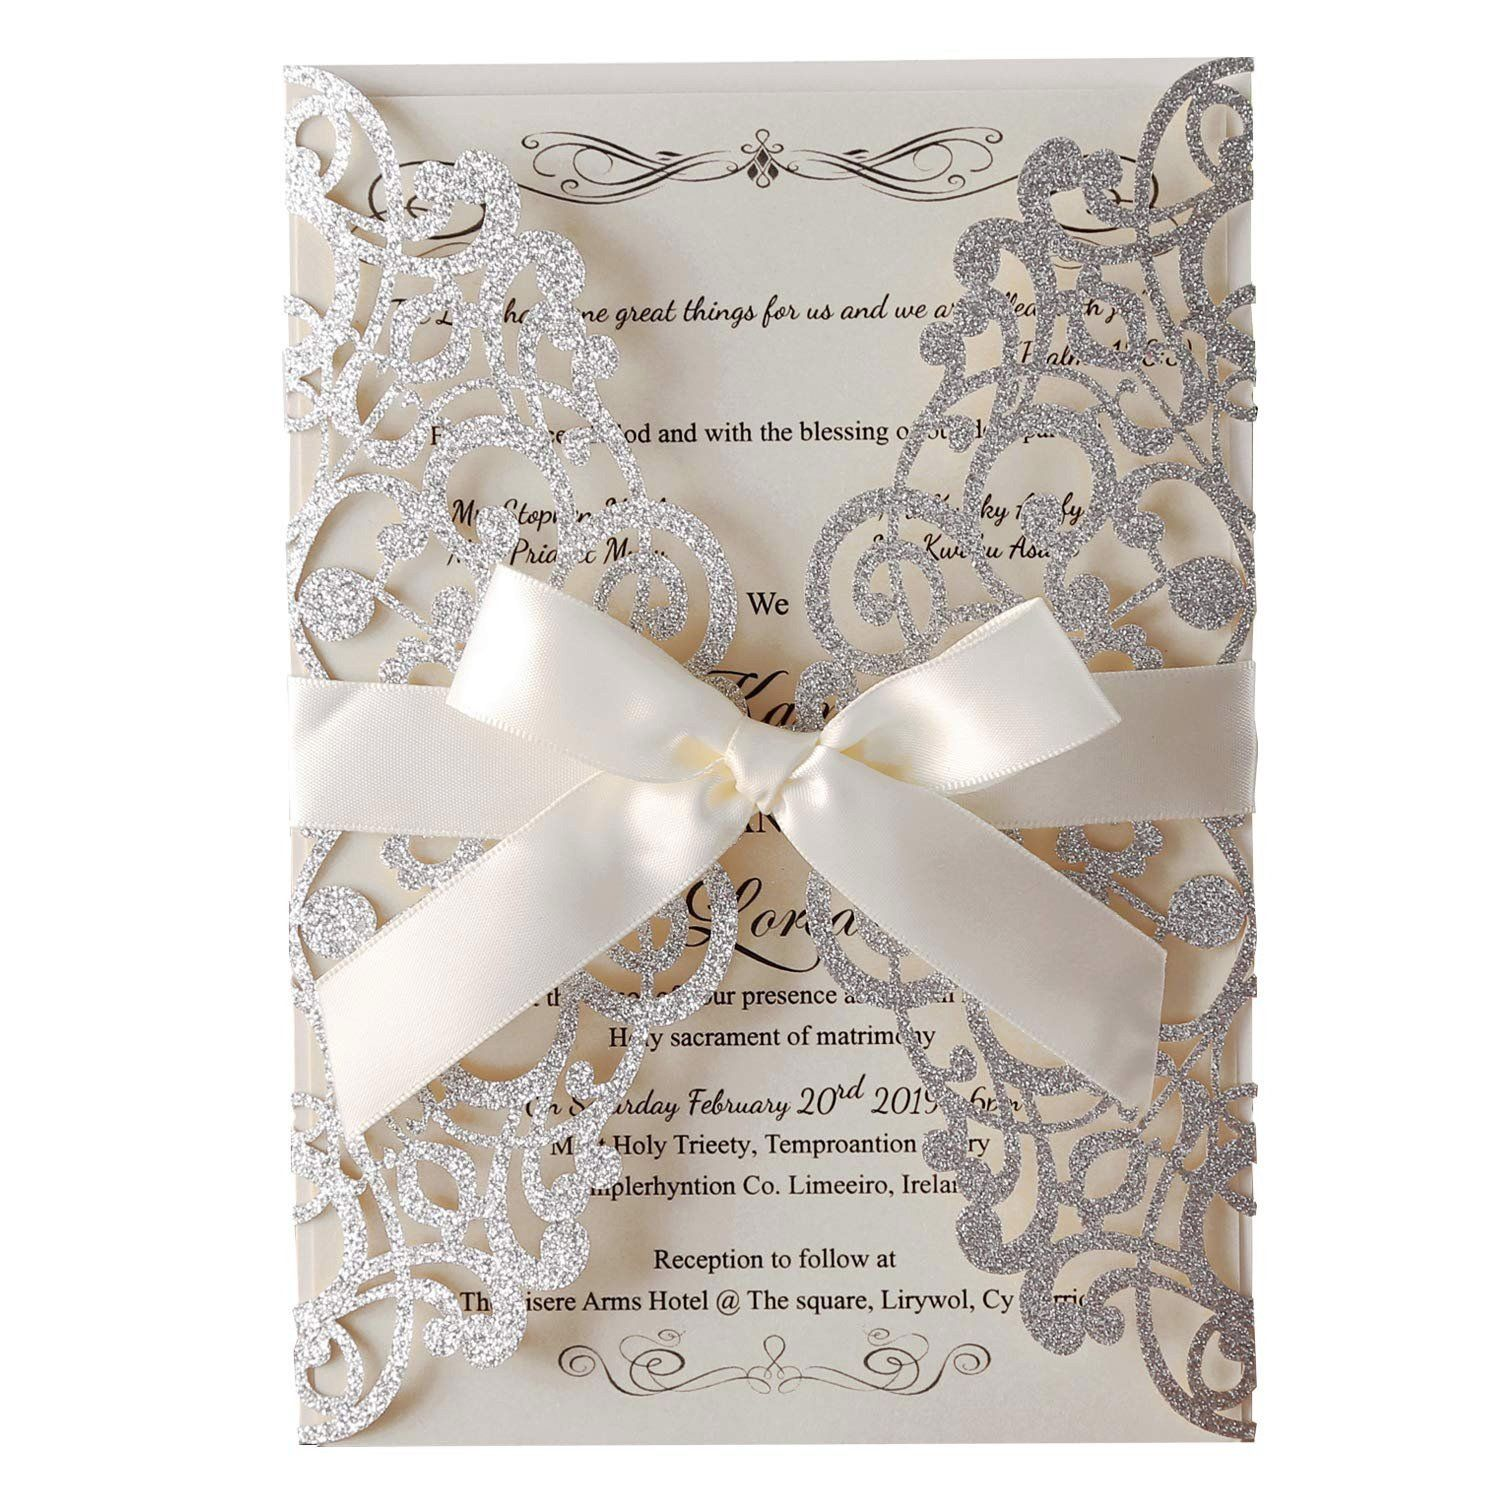 Wedding Invitations Kits Cheap Beautiful Cheap Wedding Invitations Kit Amazon Hosmsu Buy Wedding Invitations Wedding Invitation Kits Wedding Shower Invitations